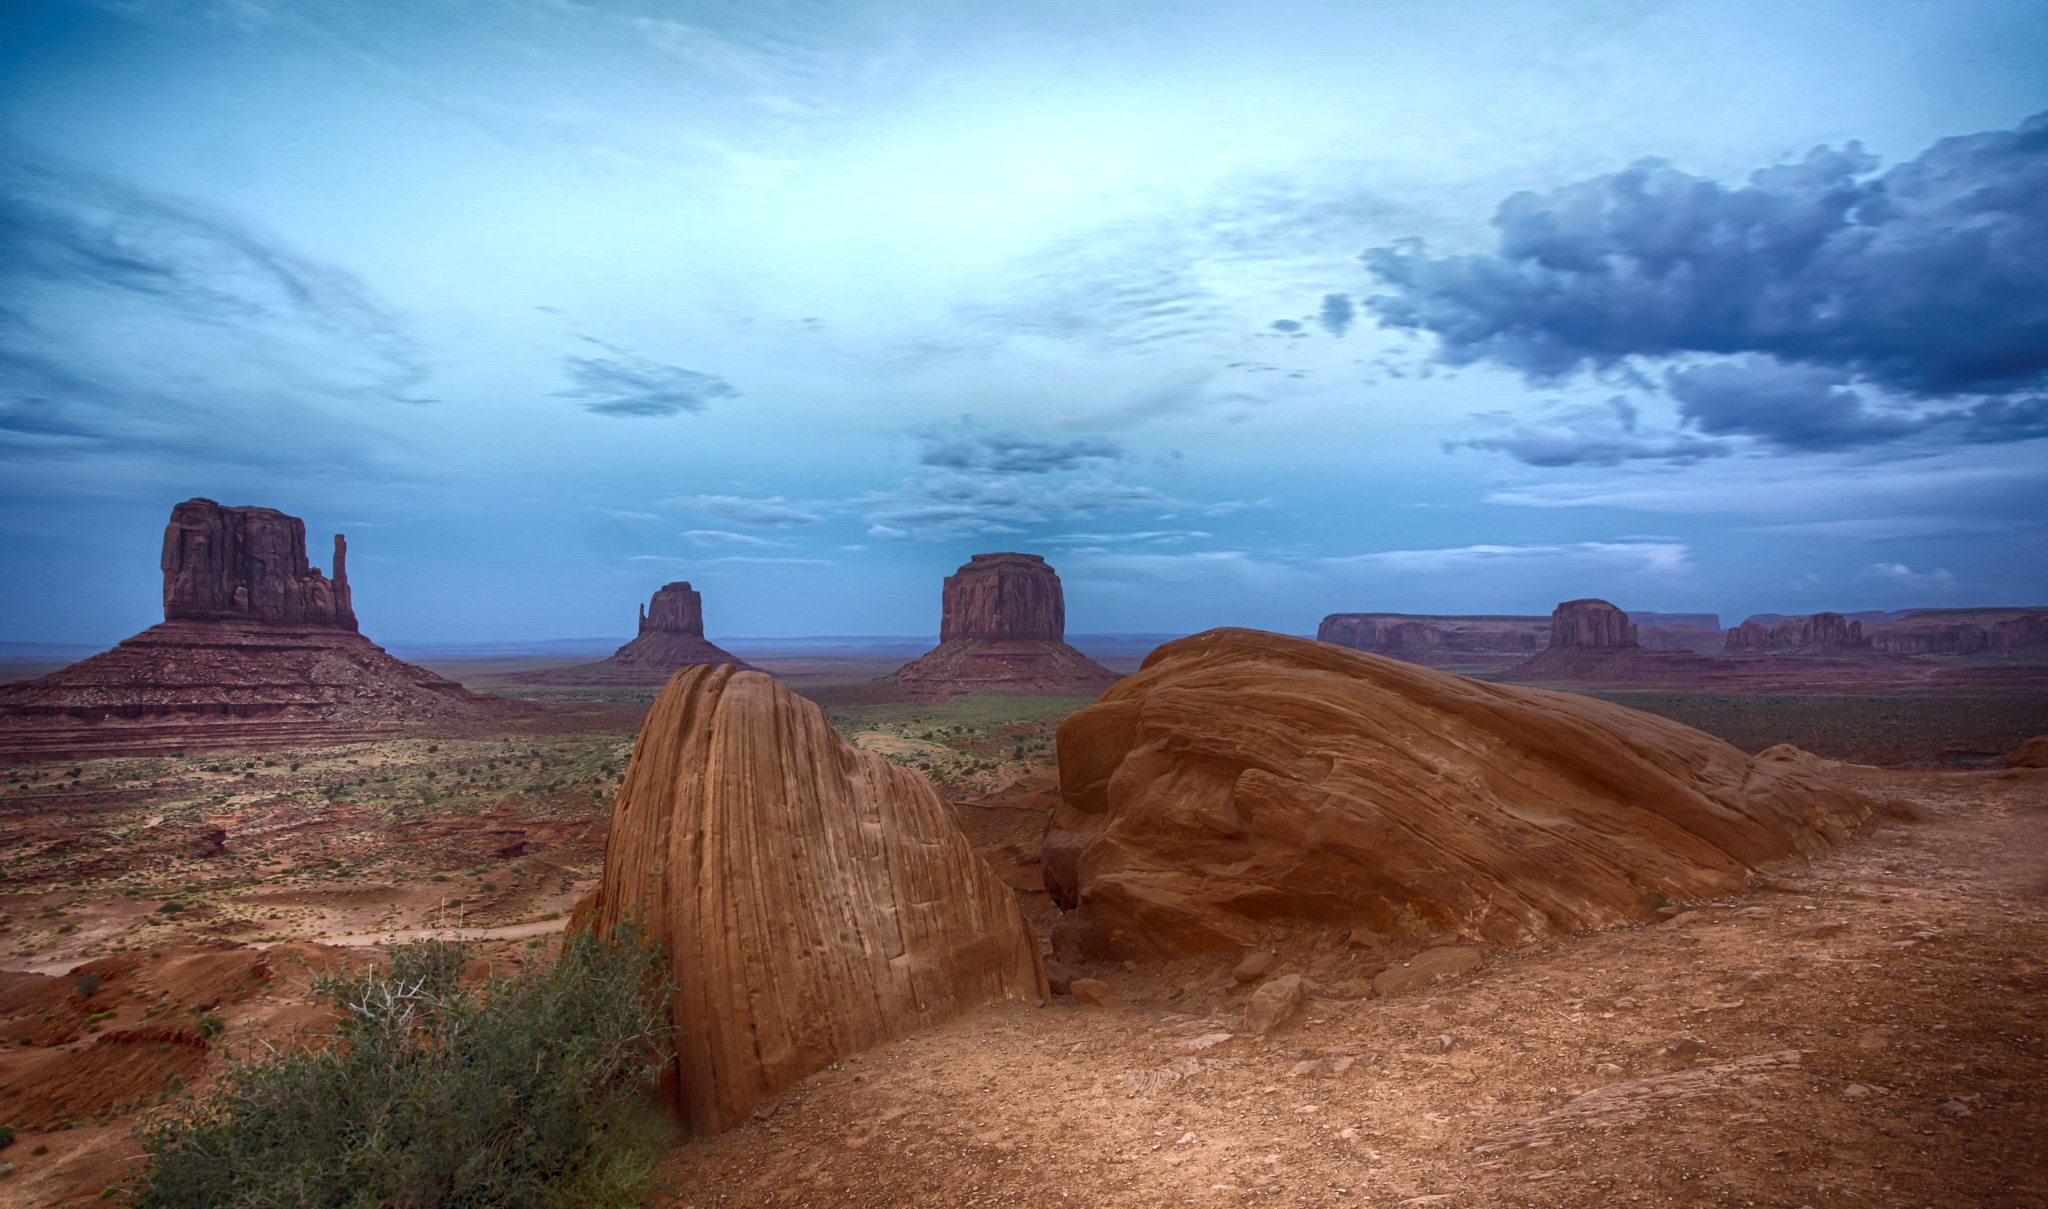 """The """"Mittens"""" and """"Merrick"""" butte by Christine C. Abad"""